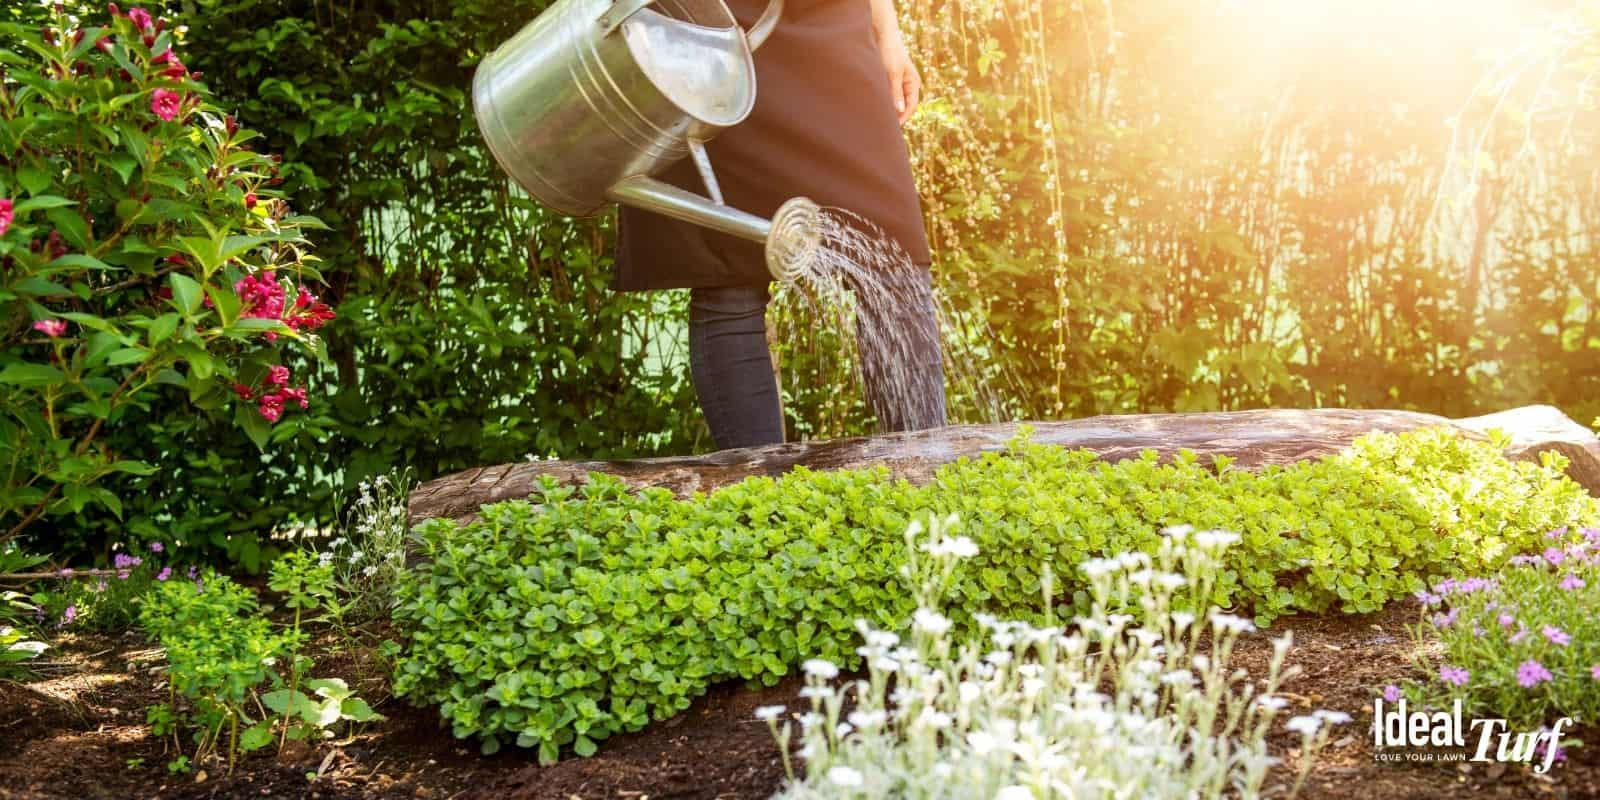 Water Your Garden with Greywater